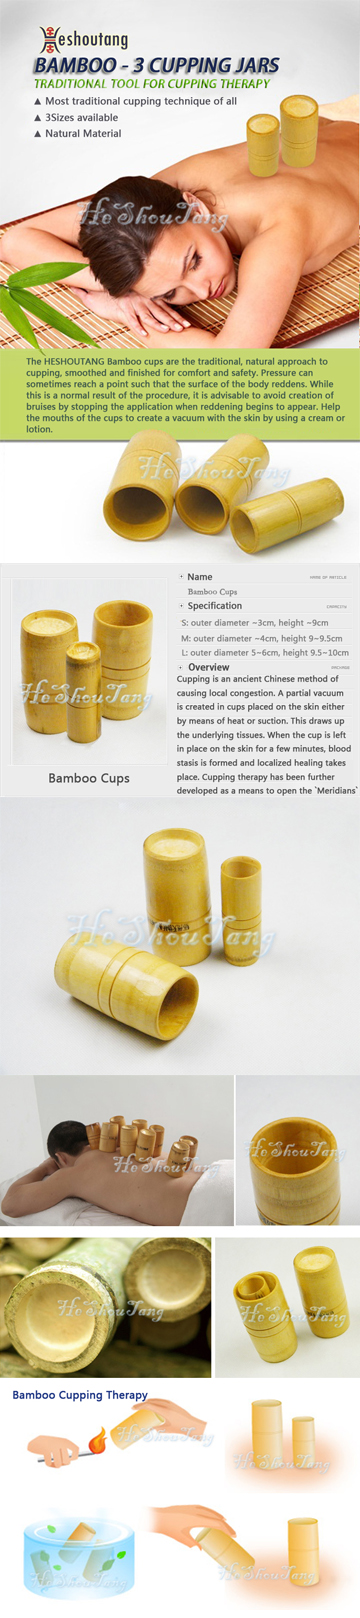 bamboo cupping, cupping therapy, cupping set